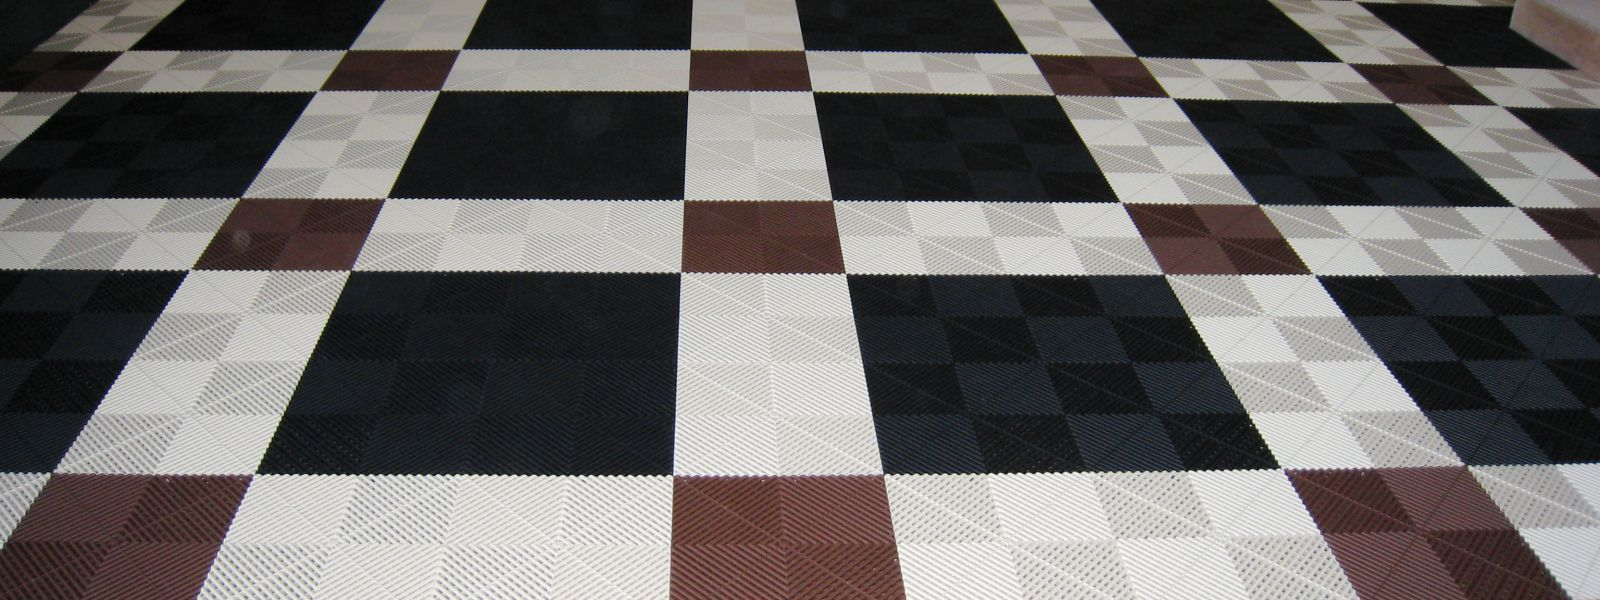 a black and white tile floor